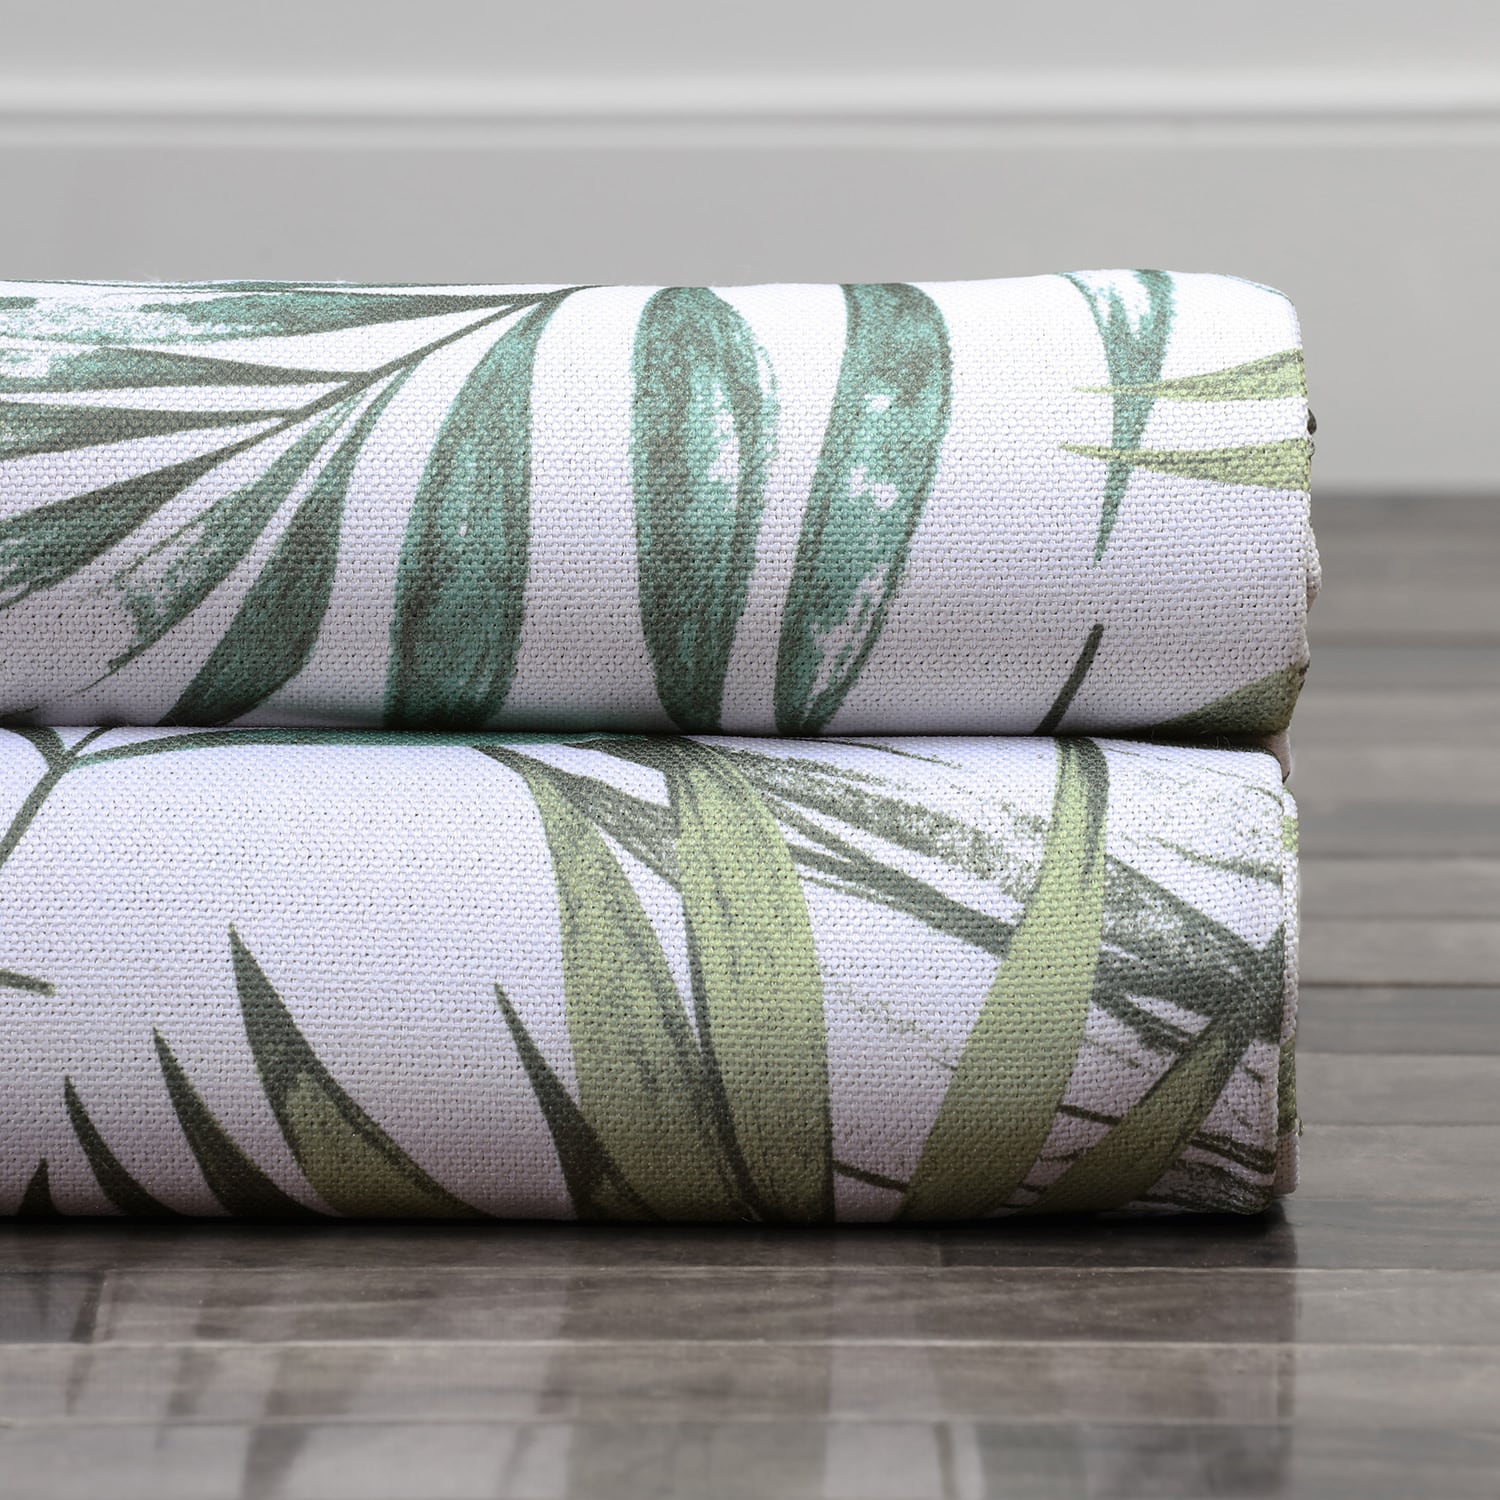 Palms Green Printed Linen Textured Blackout Swatch